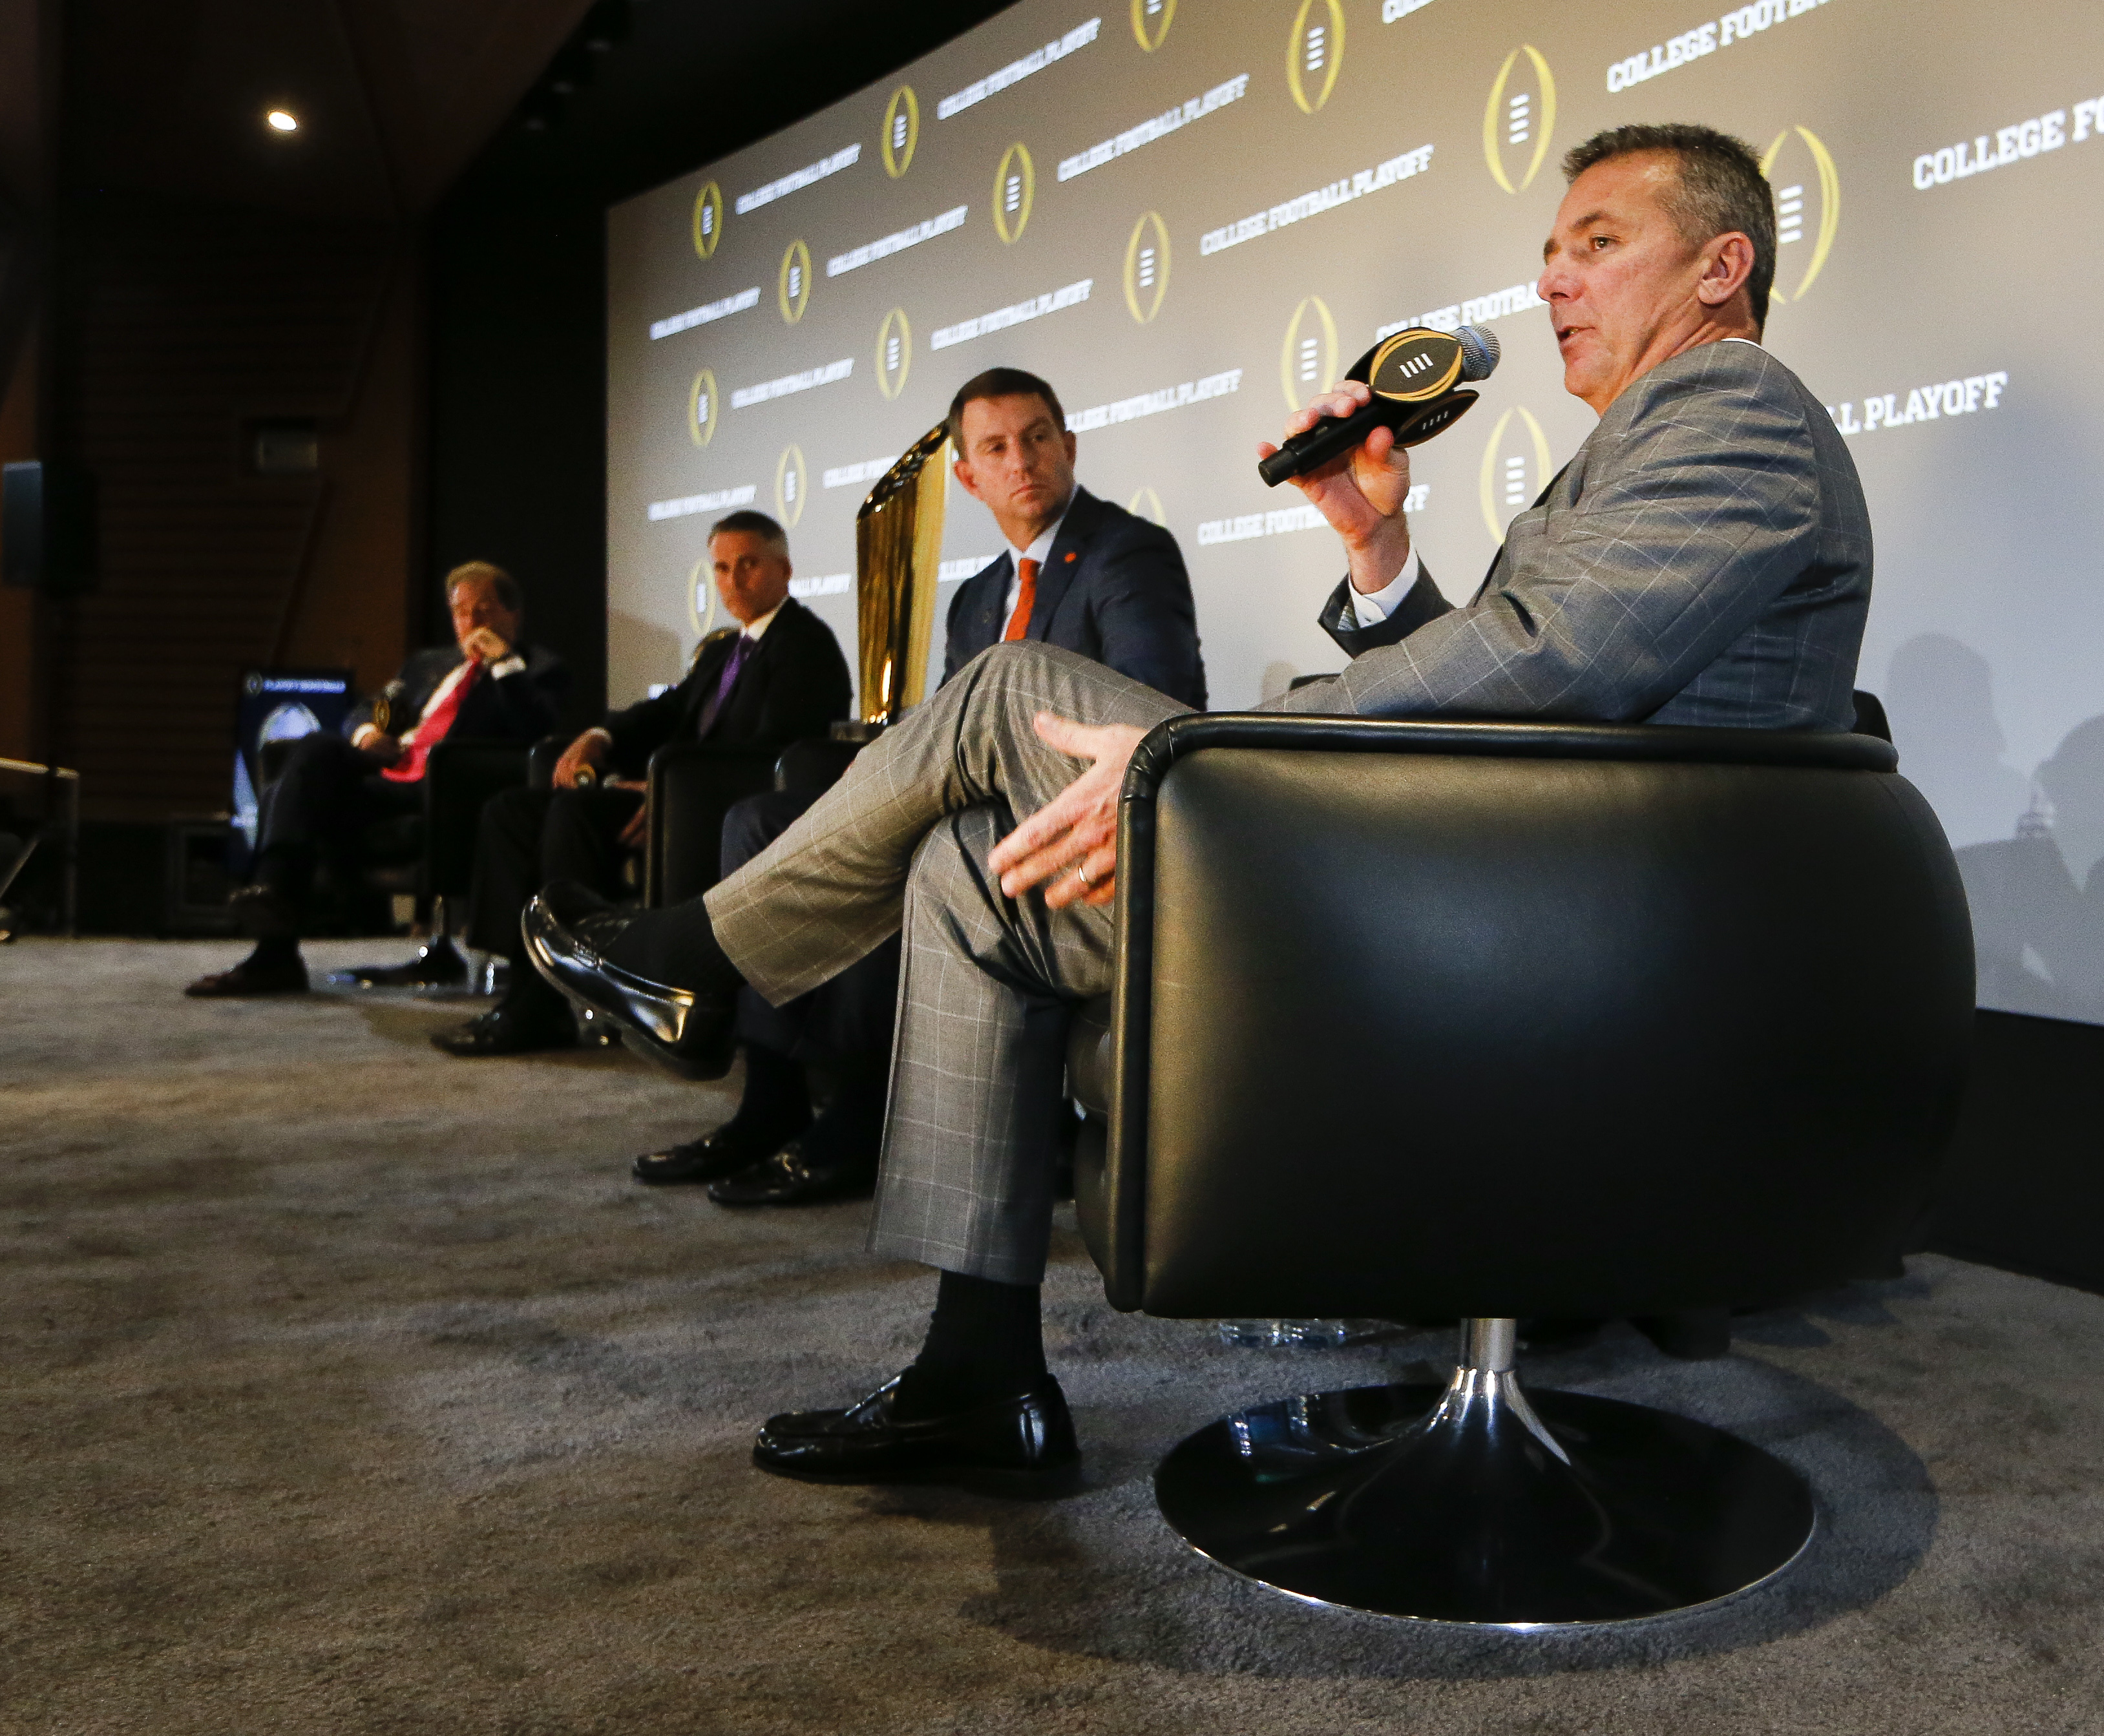 Ohio State head football coach Urban Meyer speaks as coaches, from left, Nick Saban of Alabama, Chris Petersen of Washington and Dabo Sweeney of Clemson look on during a news conference with the all four coaches in the college football playoffs Thursday,